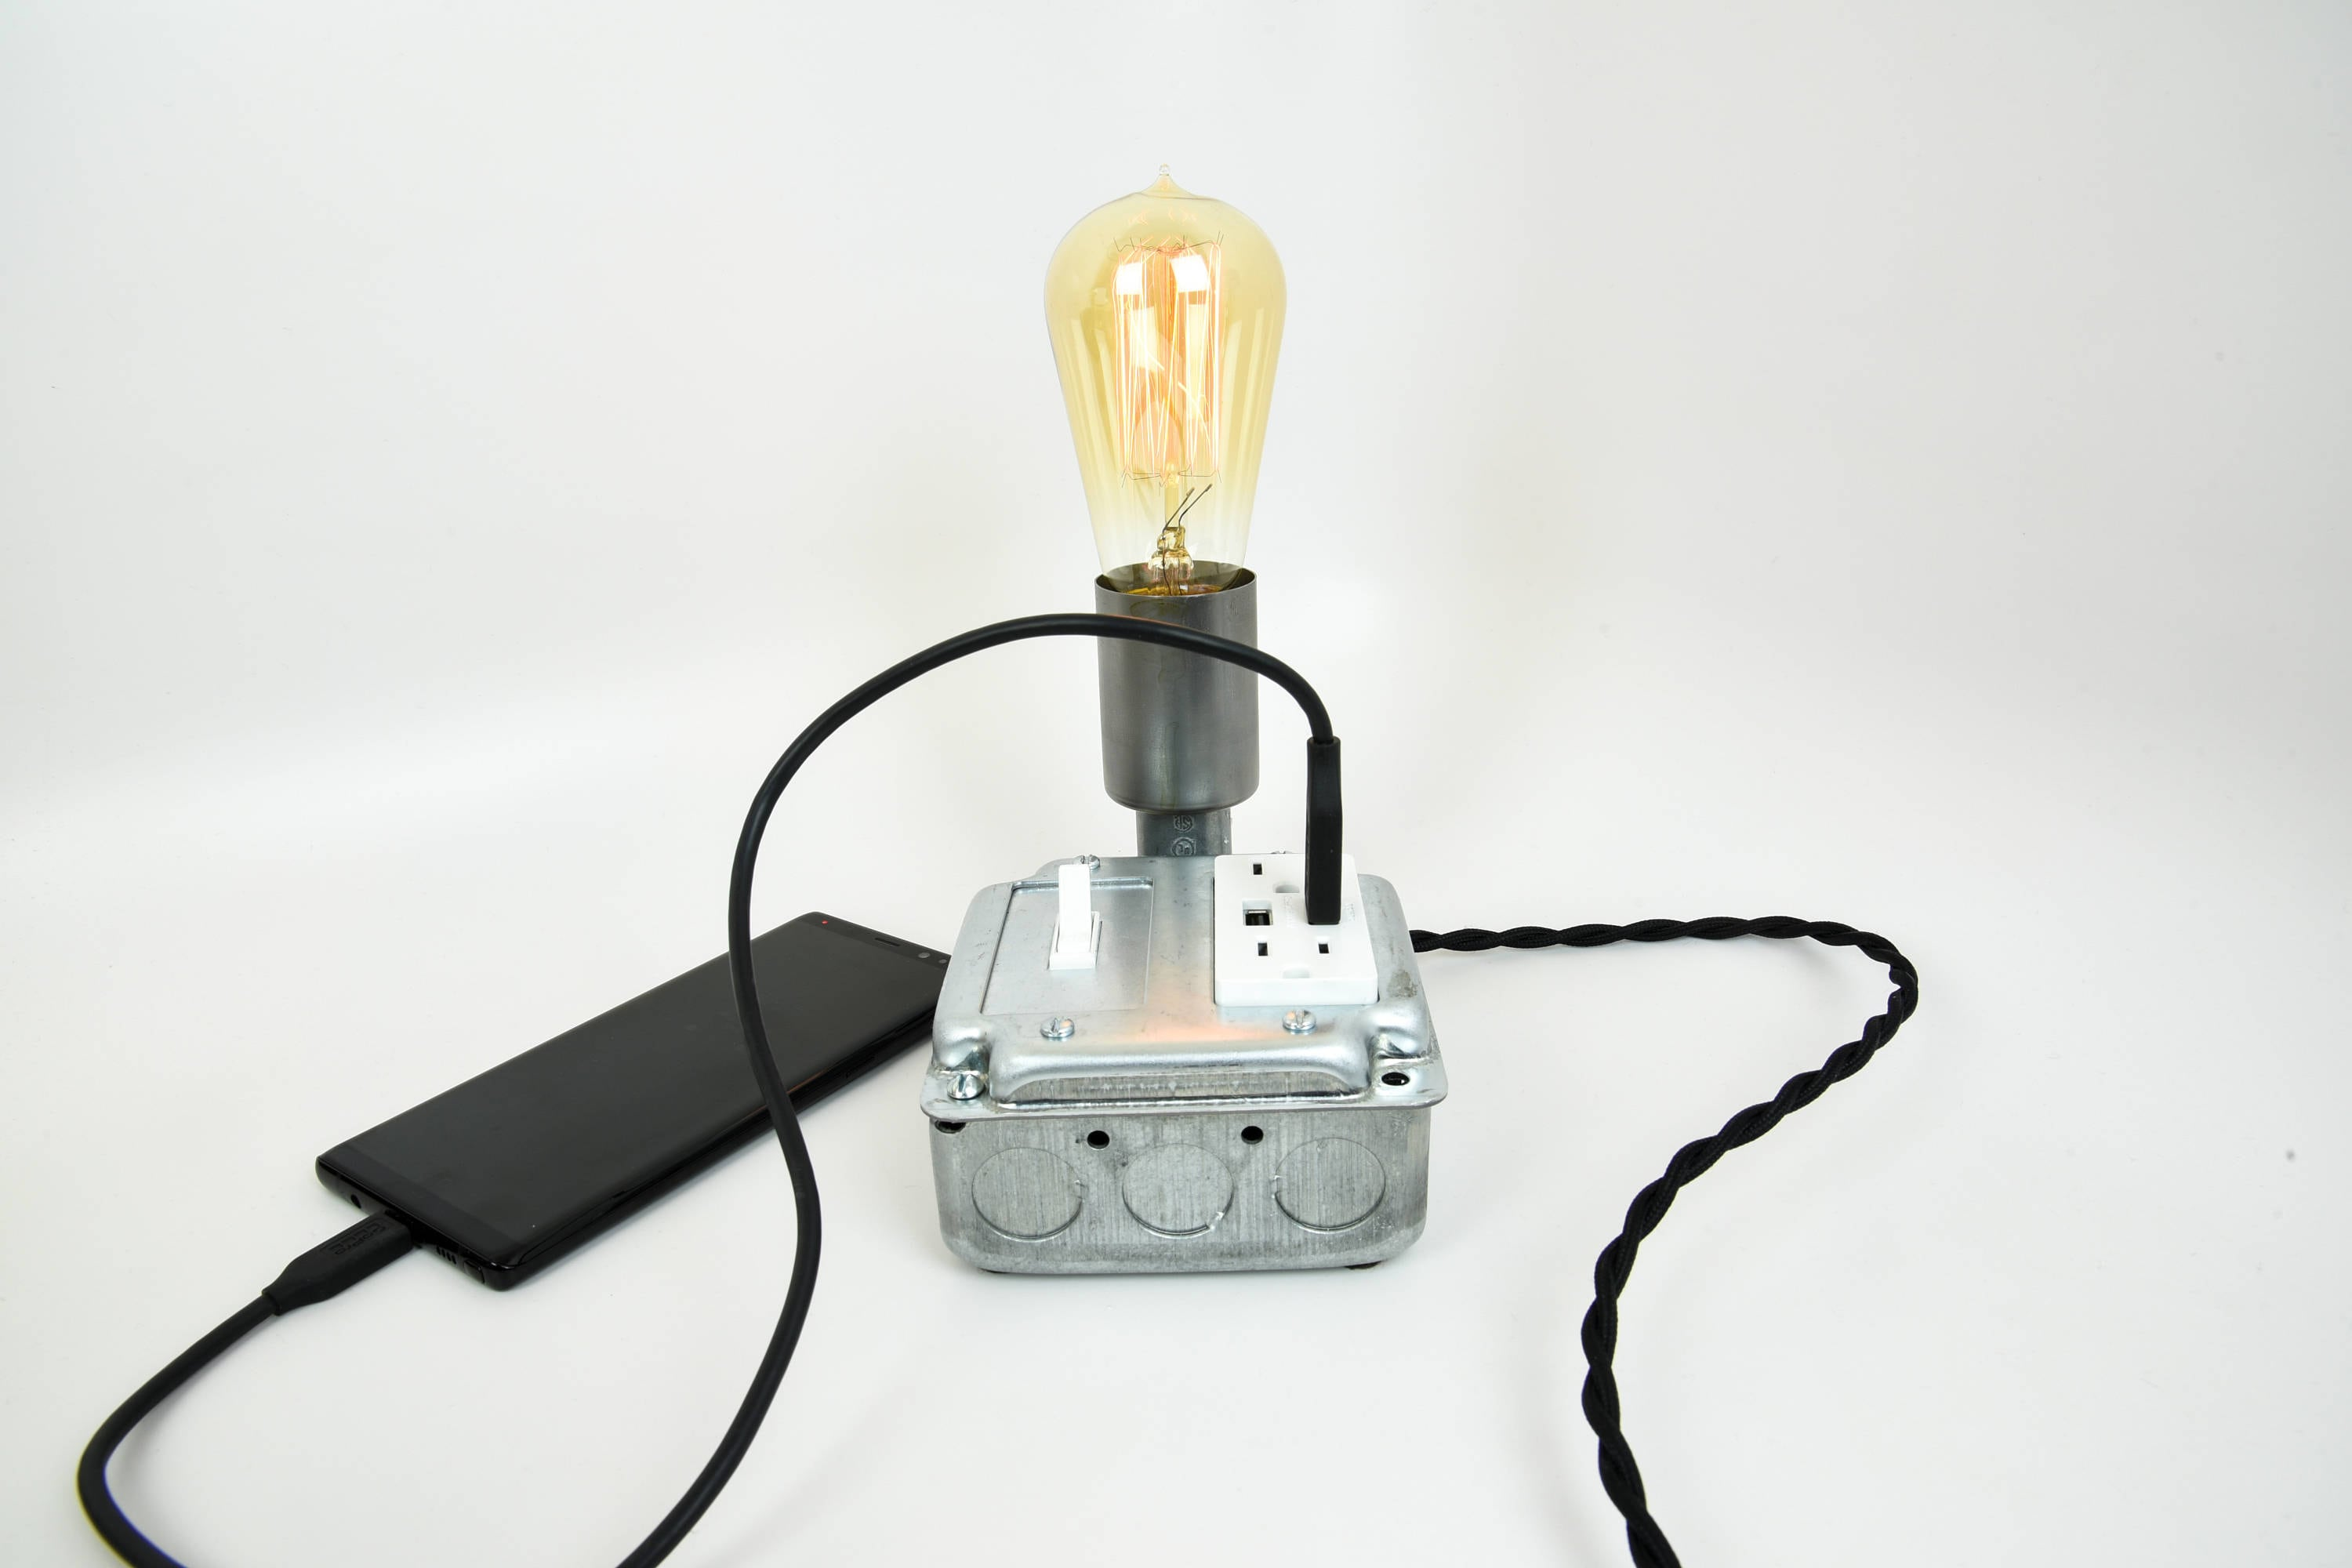 Industrial Table Lamp - USB Charging Station - Fast Charging Station ...